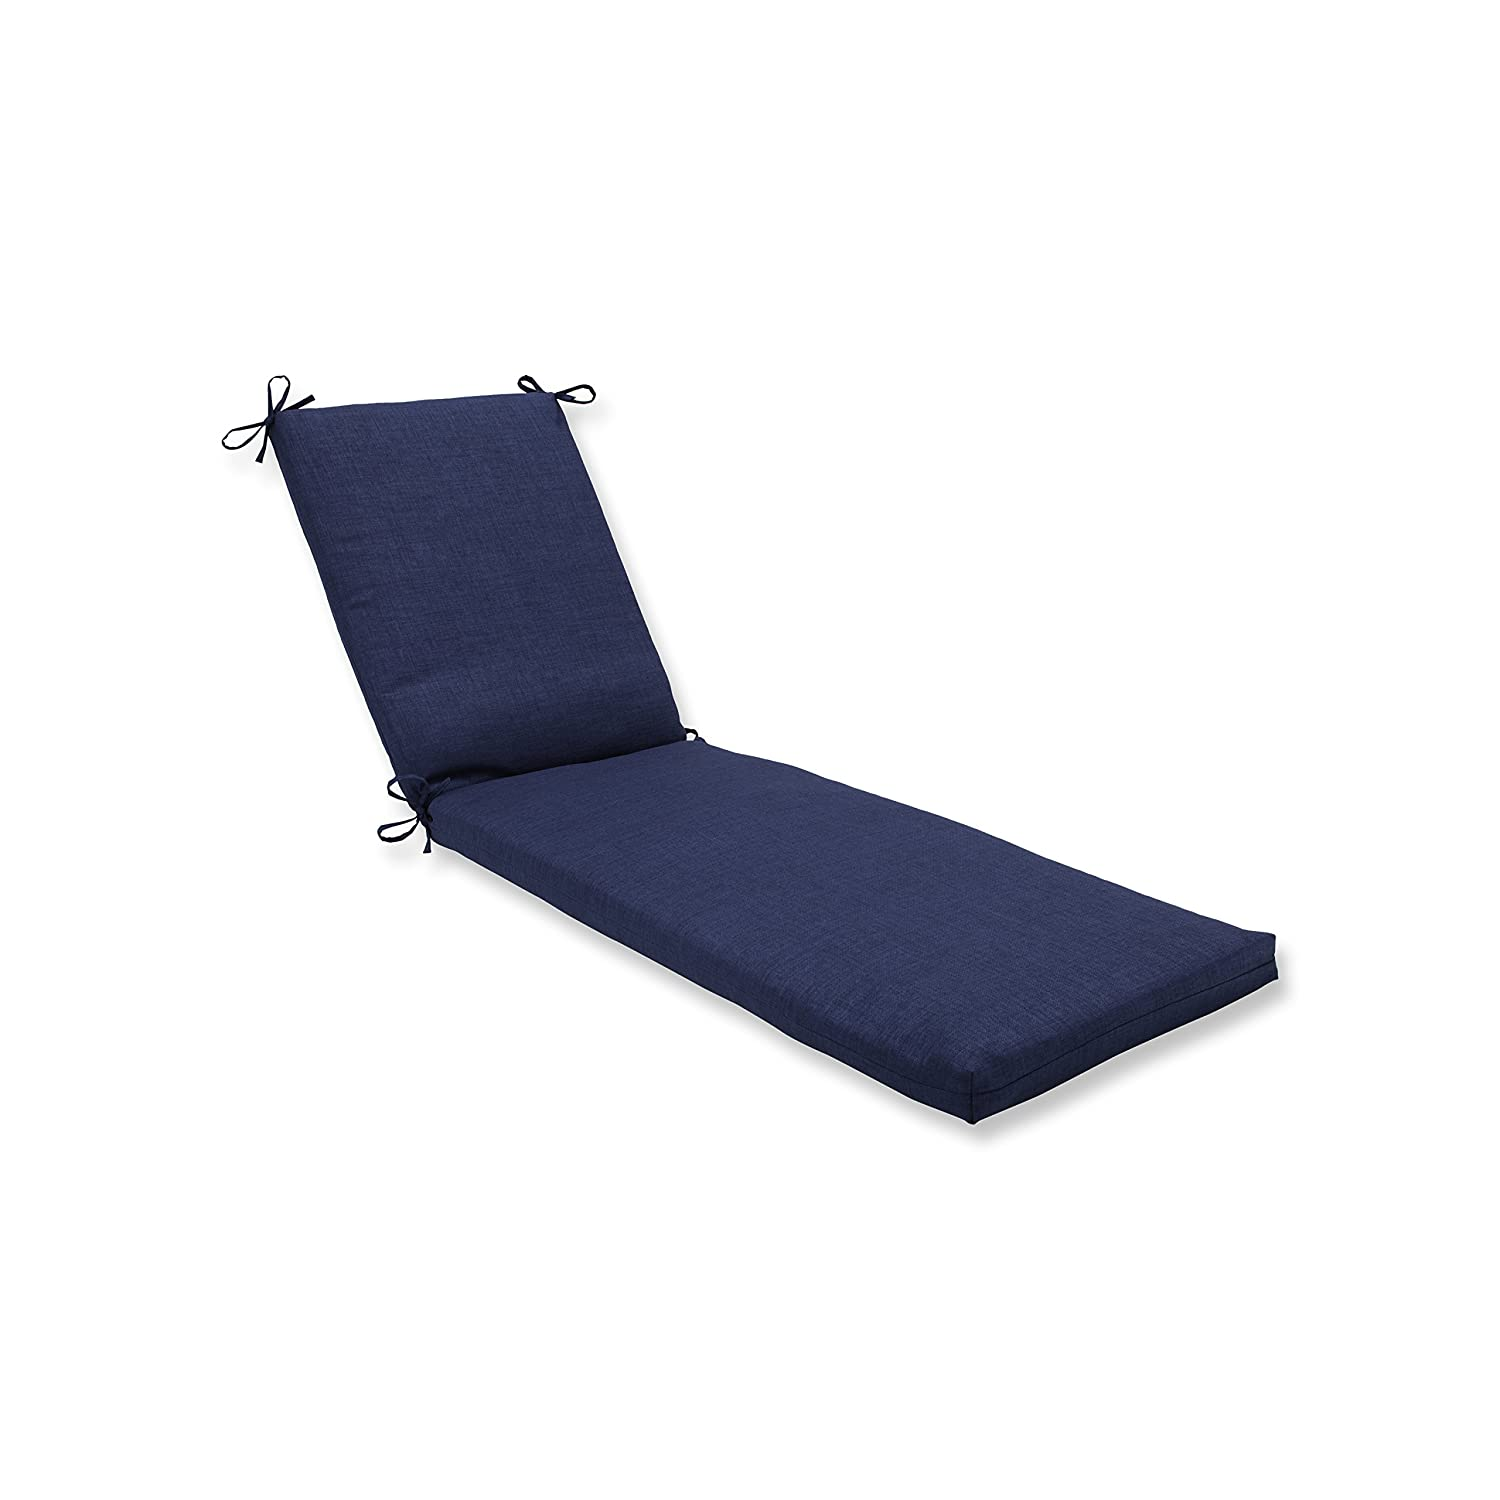 Pillow Perfect Outdoor Indoor Rave Indigo Chaise Lounge Cushion 80x23x3